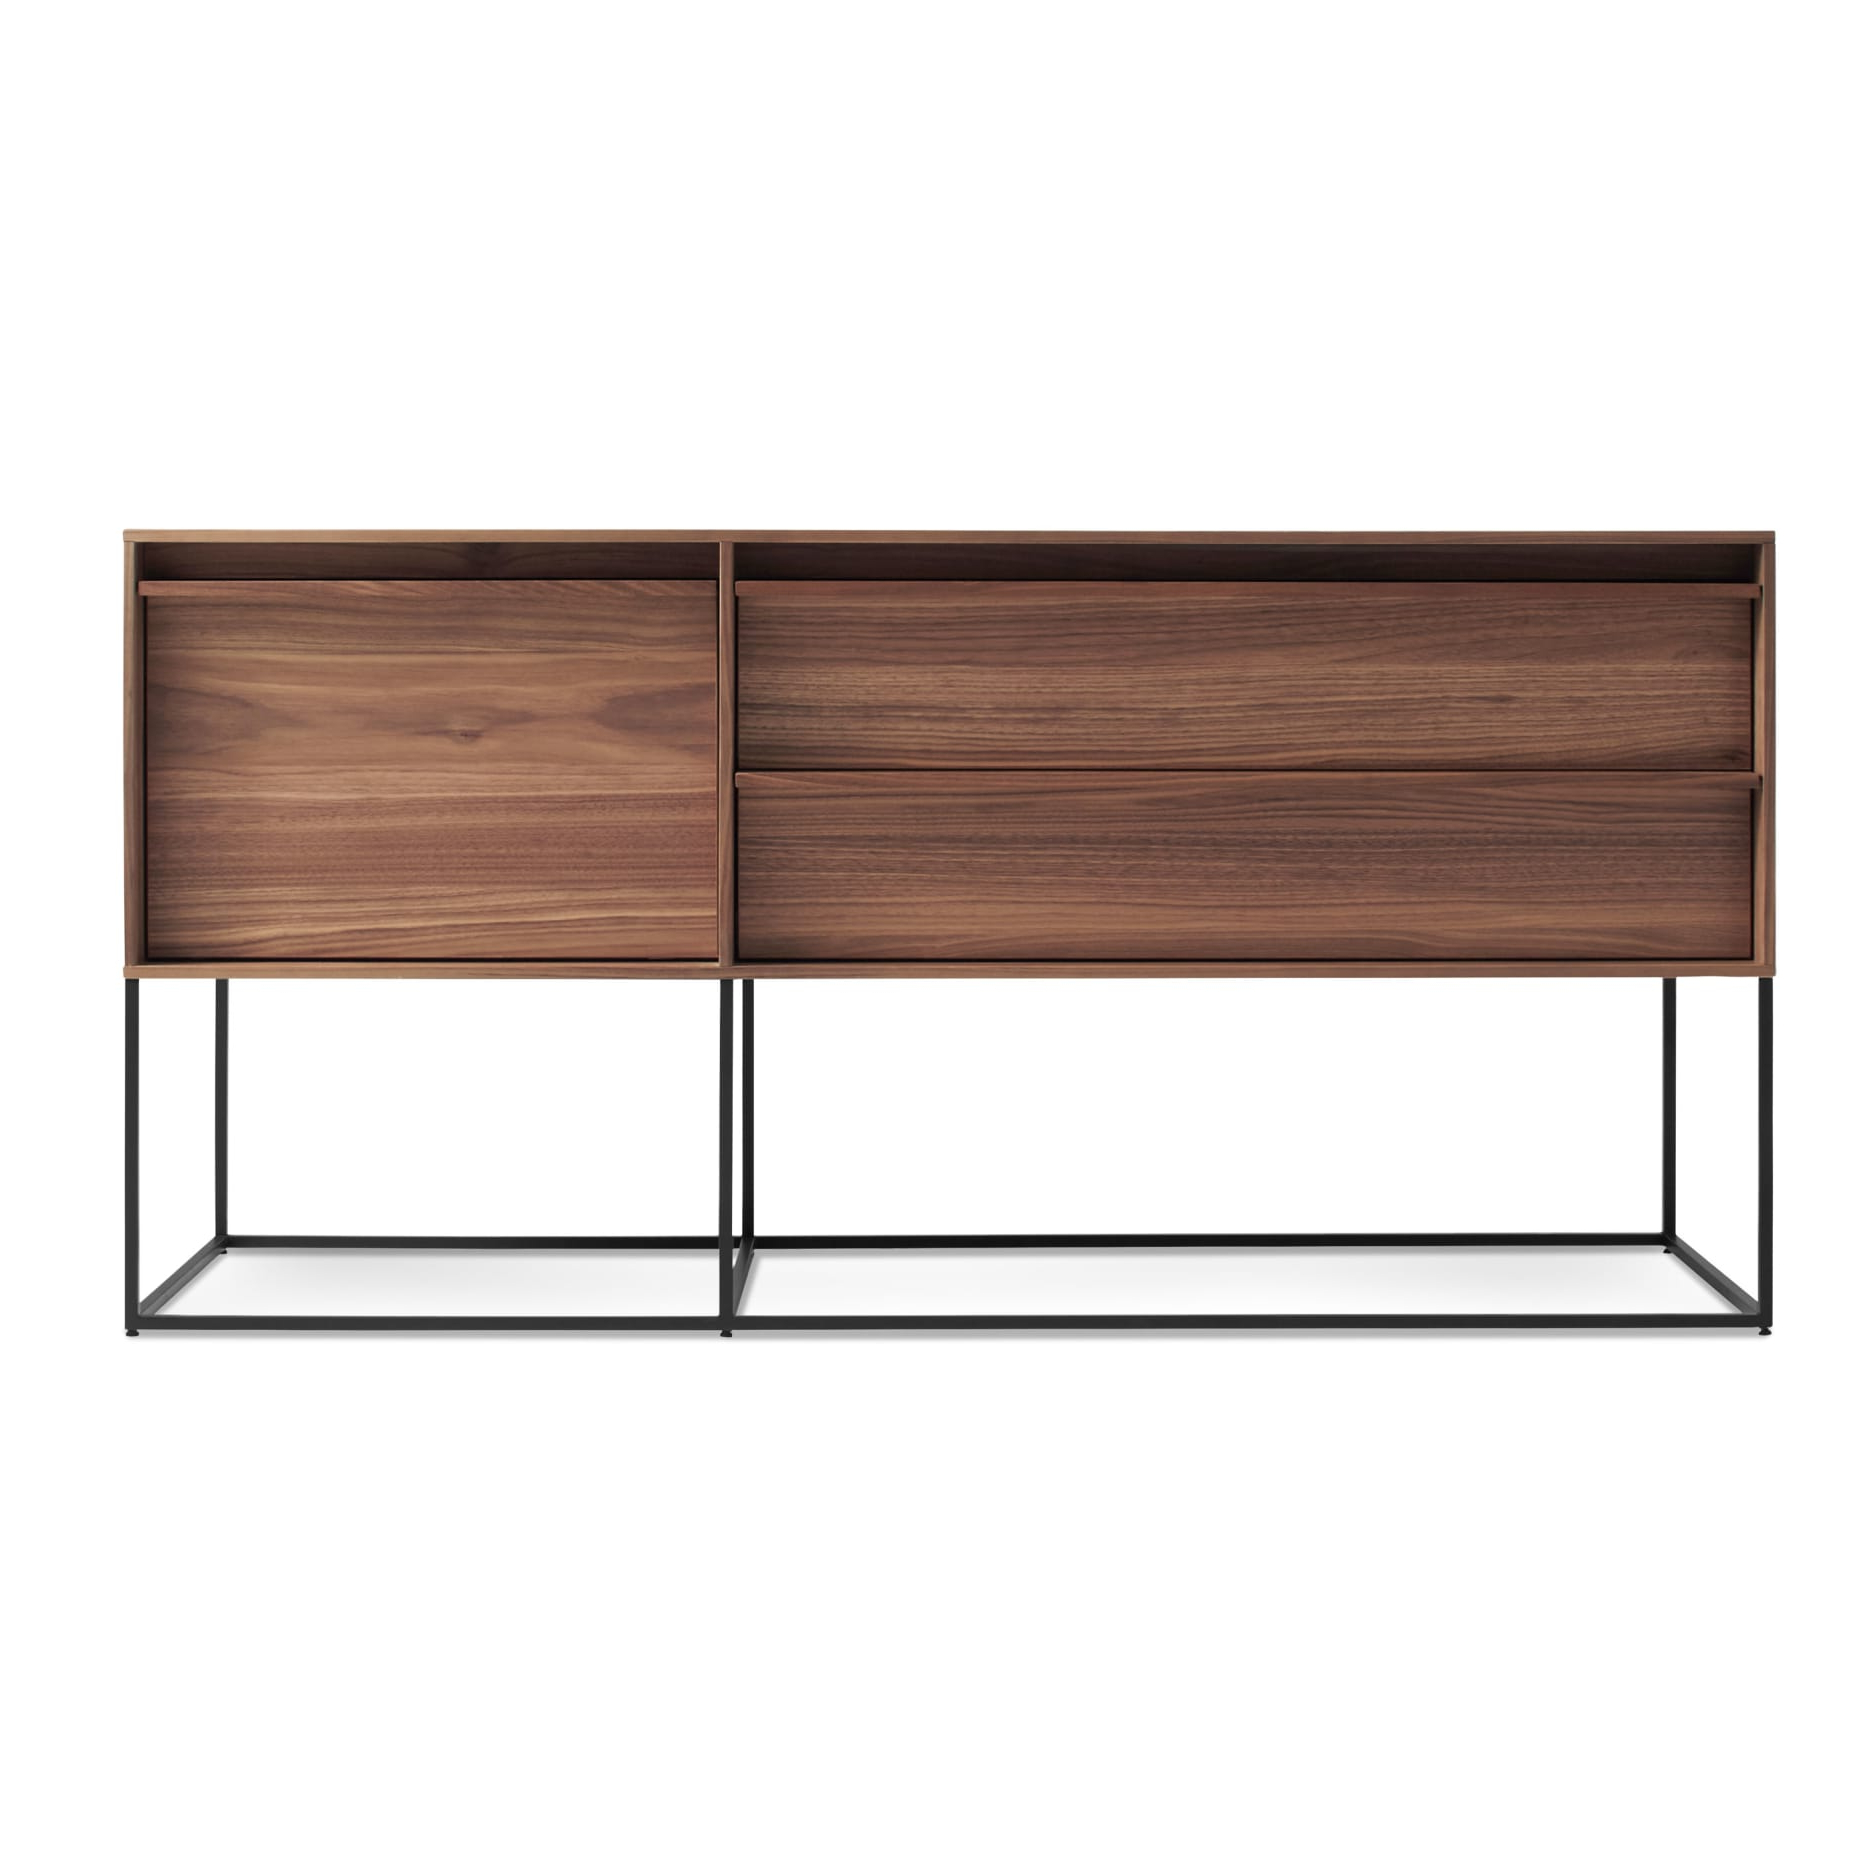 Rule 1 Door / 2 Drawer Console – Modern Console | Blu Dot With Regard To Geometric Shapes Credenzas (View 19 of 20)